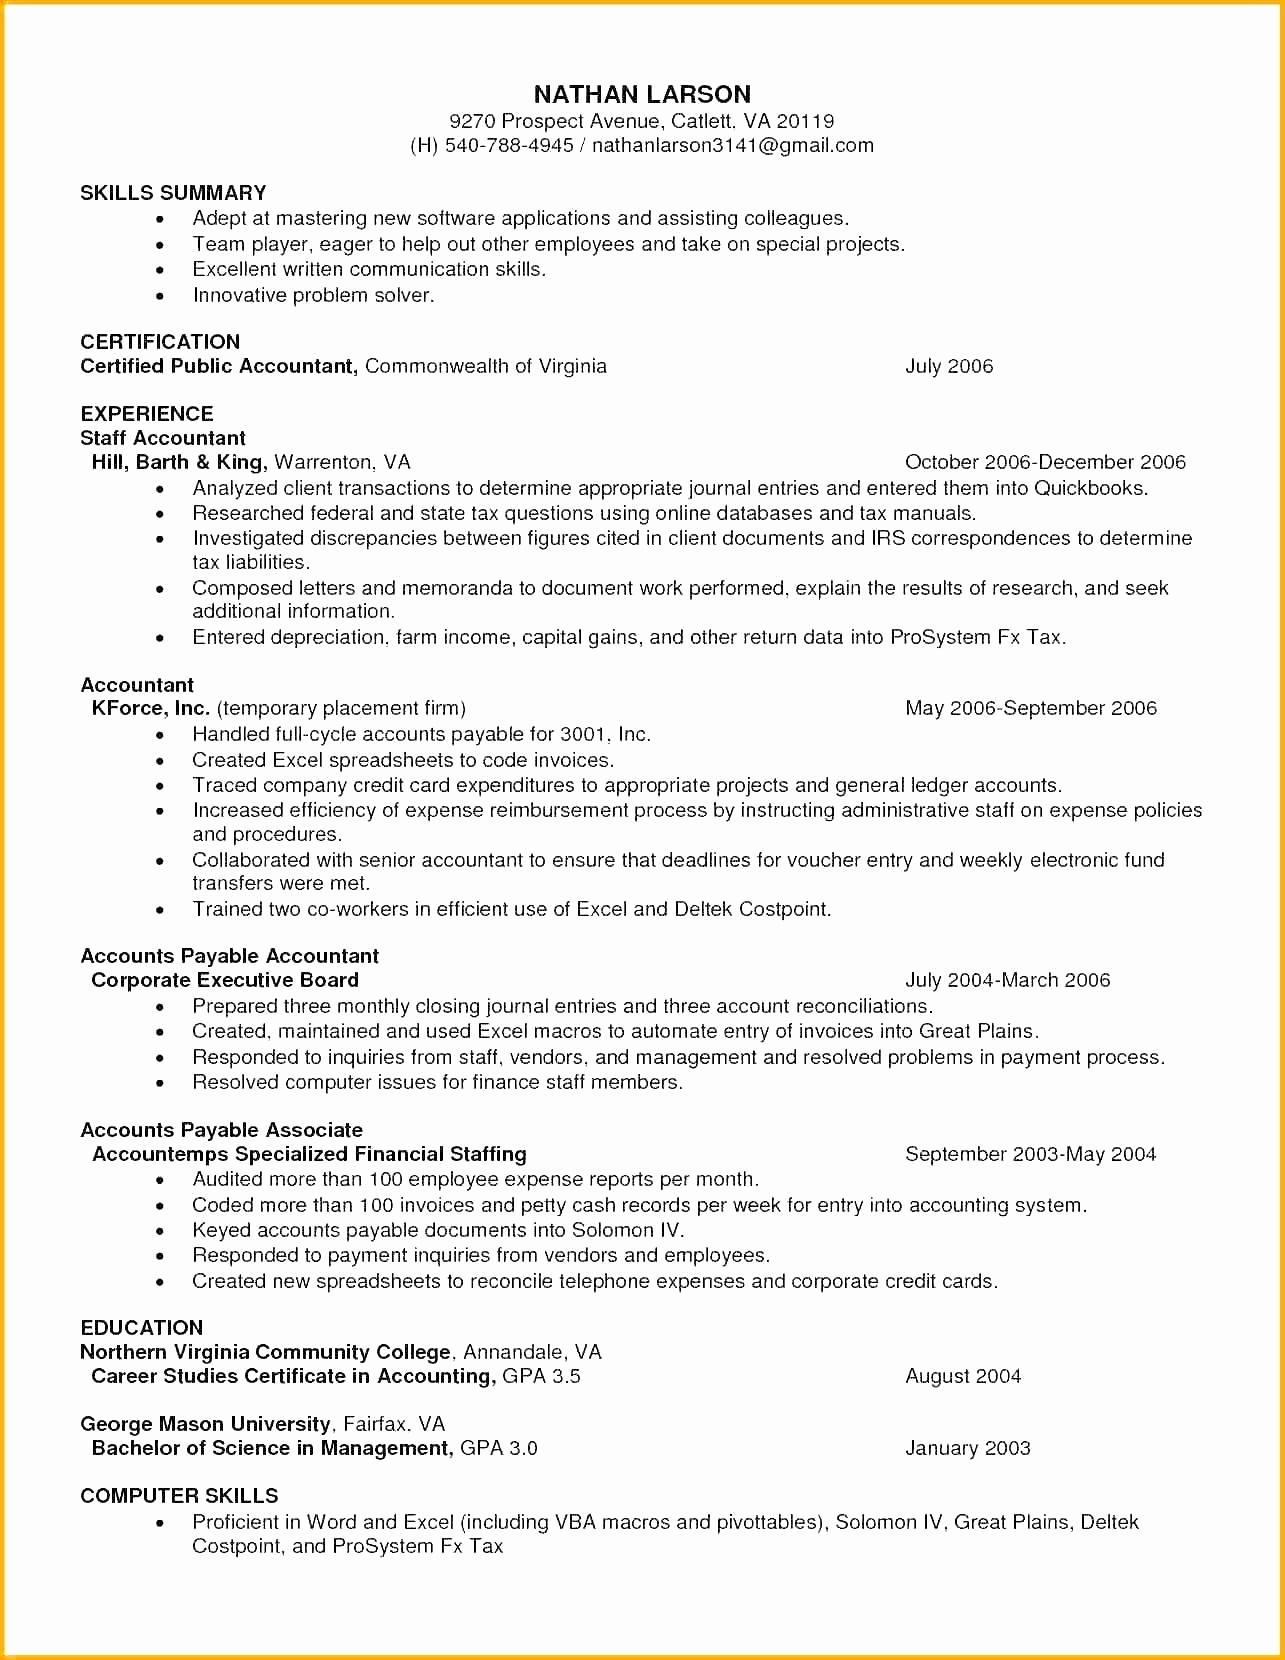 marissa mayer resume template word Collection-27 Beautiful Stock Marissa Mayer Resume Template Word 13-k